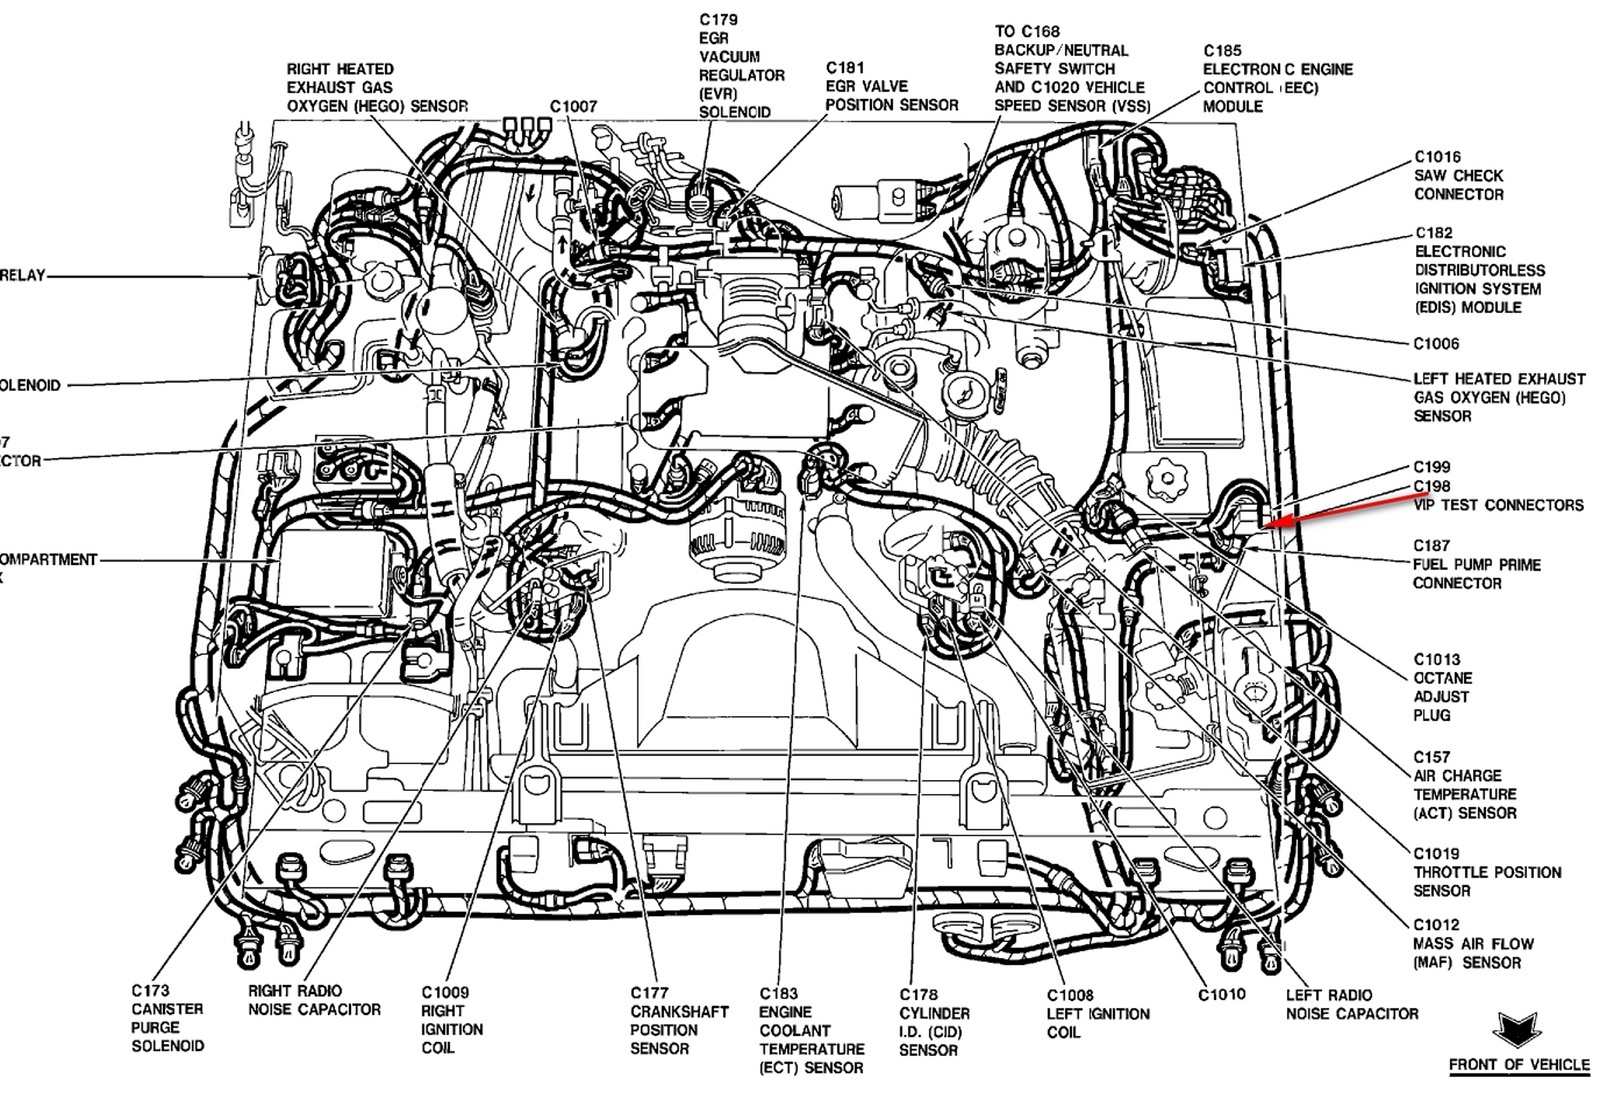 hight resolution of diagram for 2000 mercury marquis heater wiring diagram blogs 2005 mercury grand marquis belt diagram 2000 mercury grand marquis wiring diagram